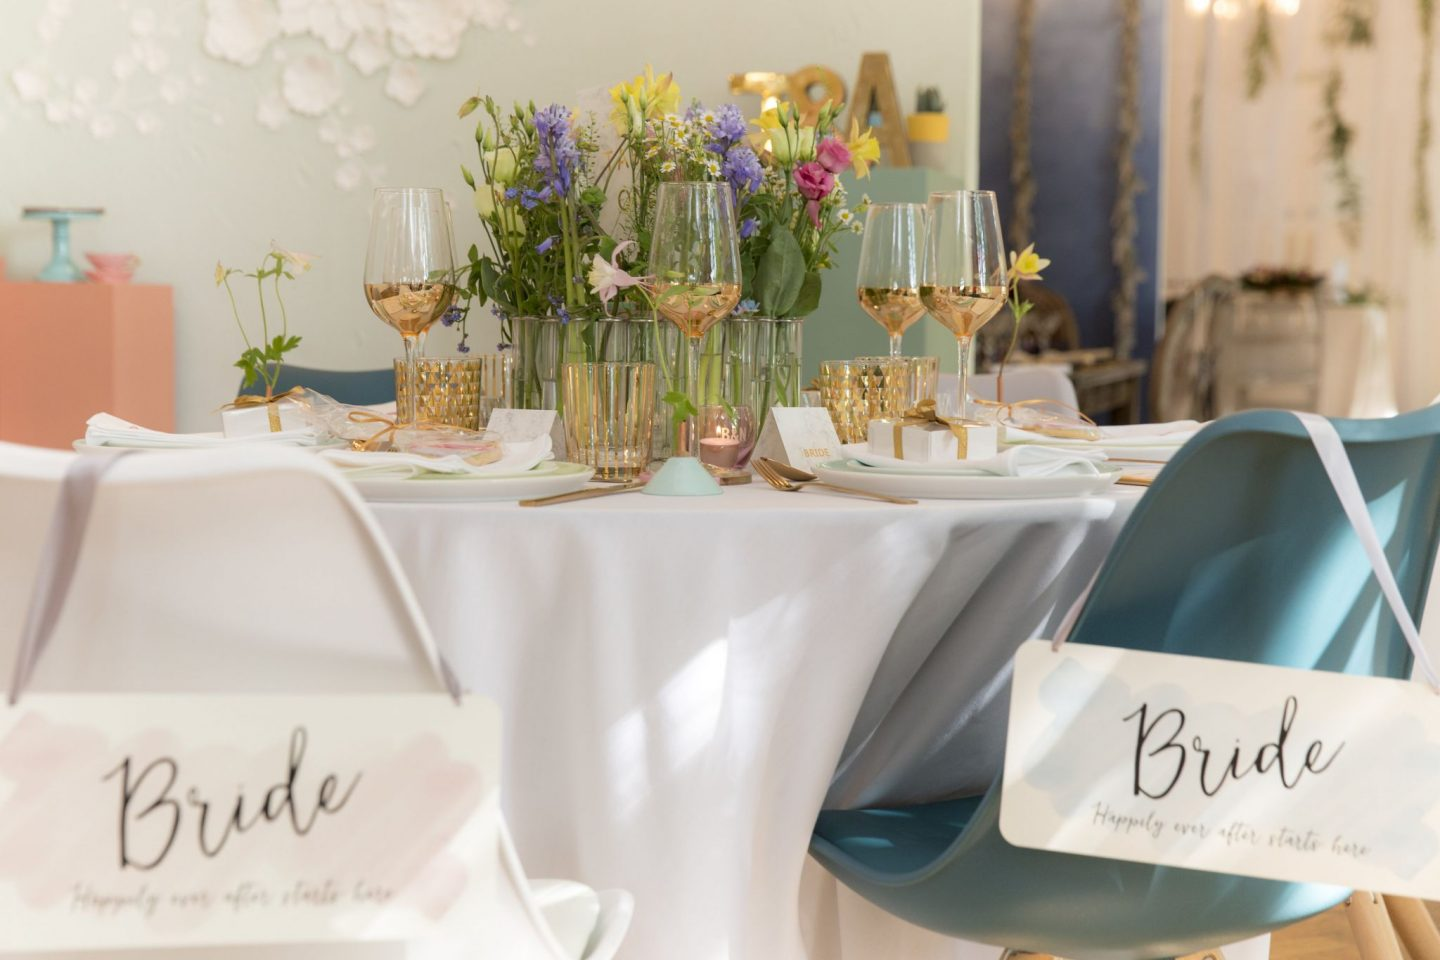 20-Laura-devine-bride-wedding-blogger-tasker-planner-not-on-the-high-street-press-day